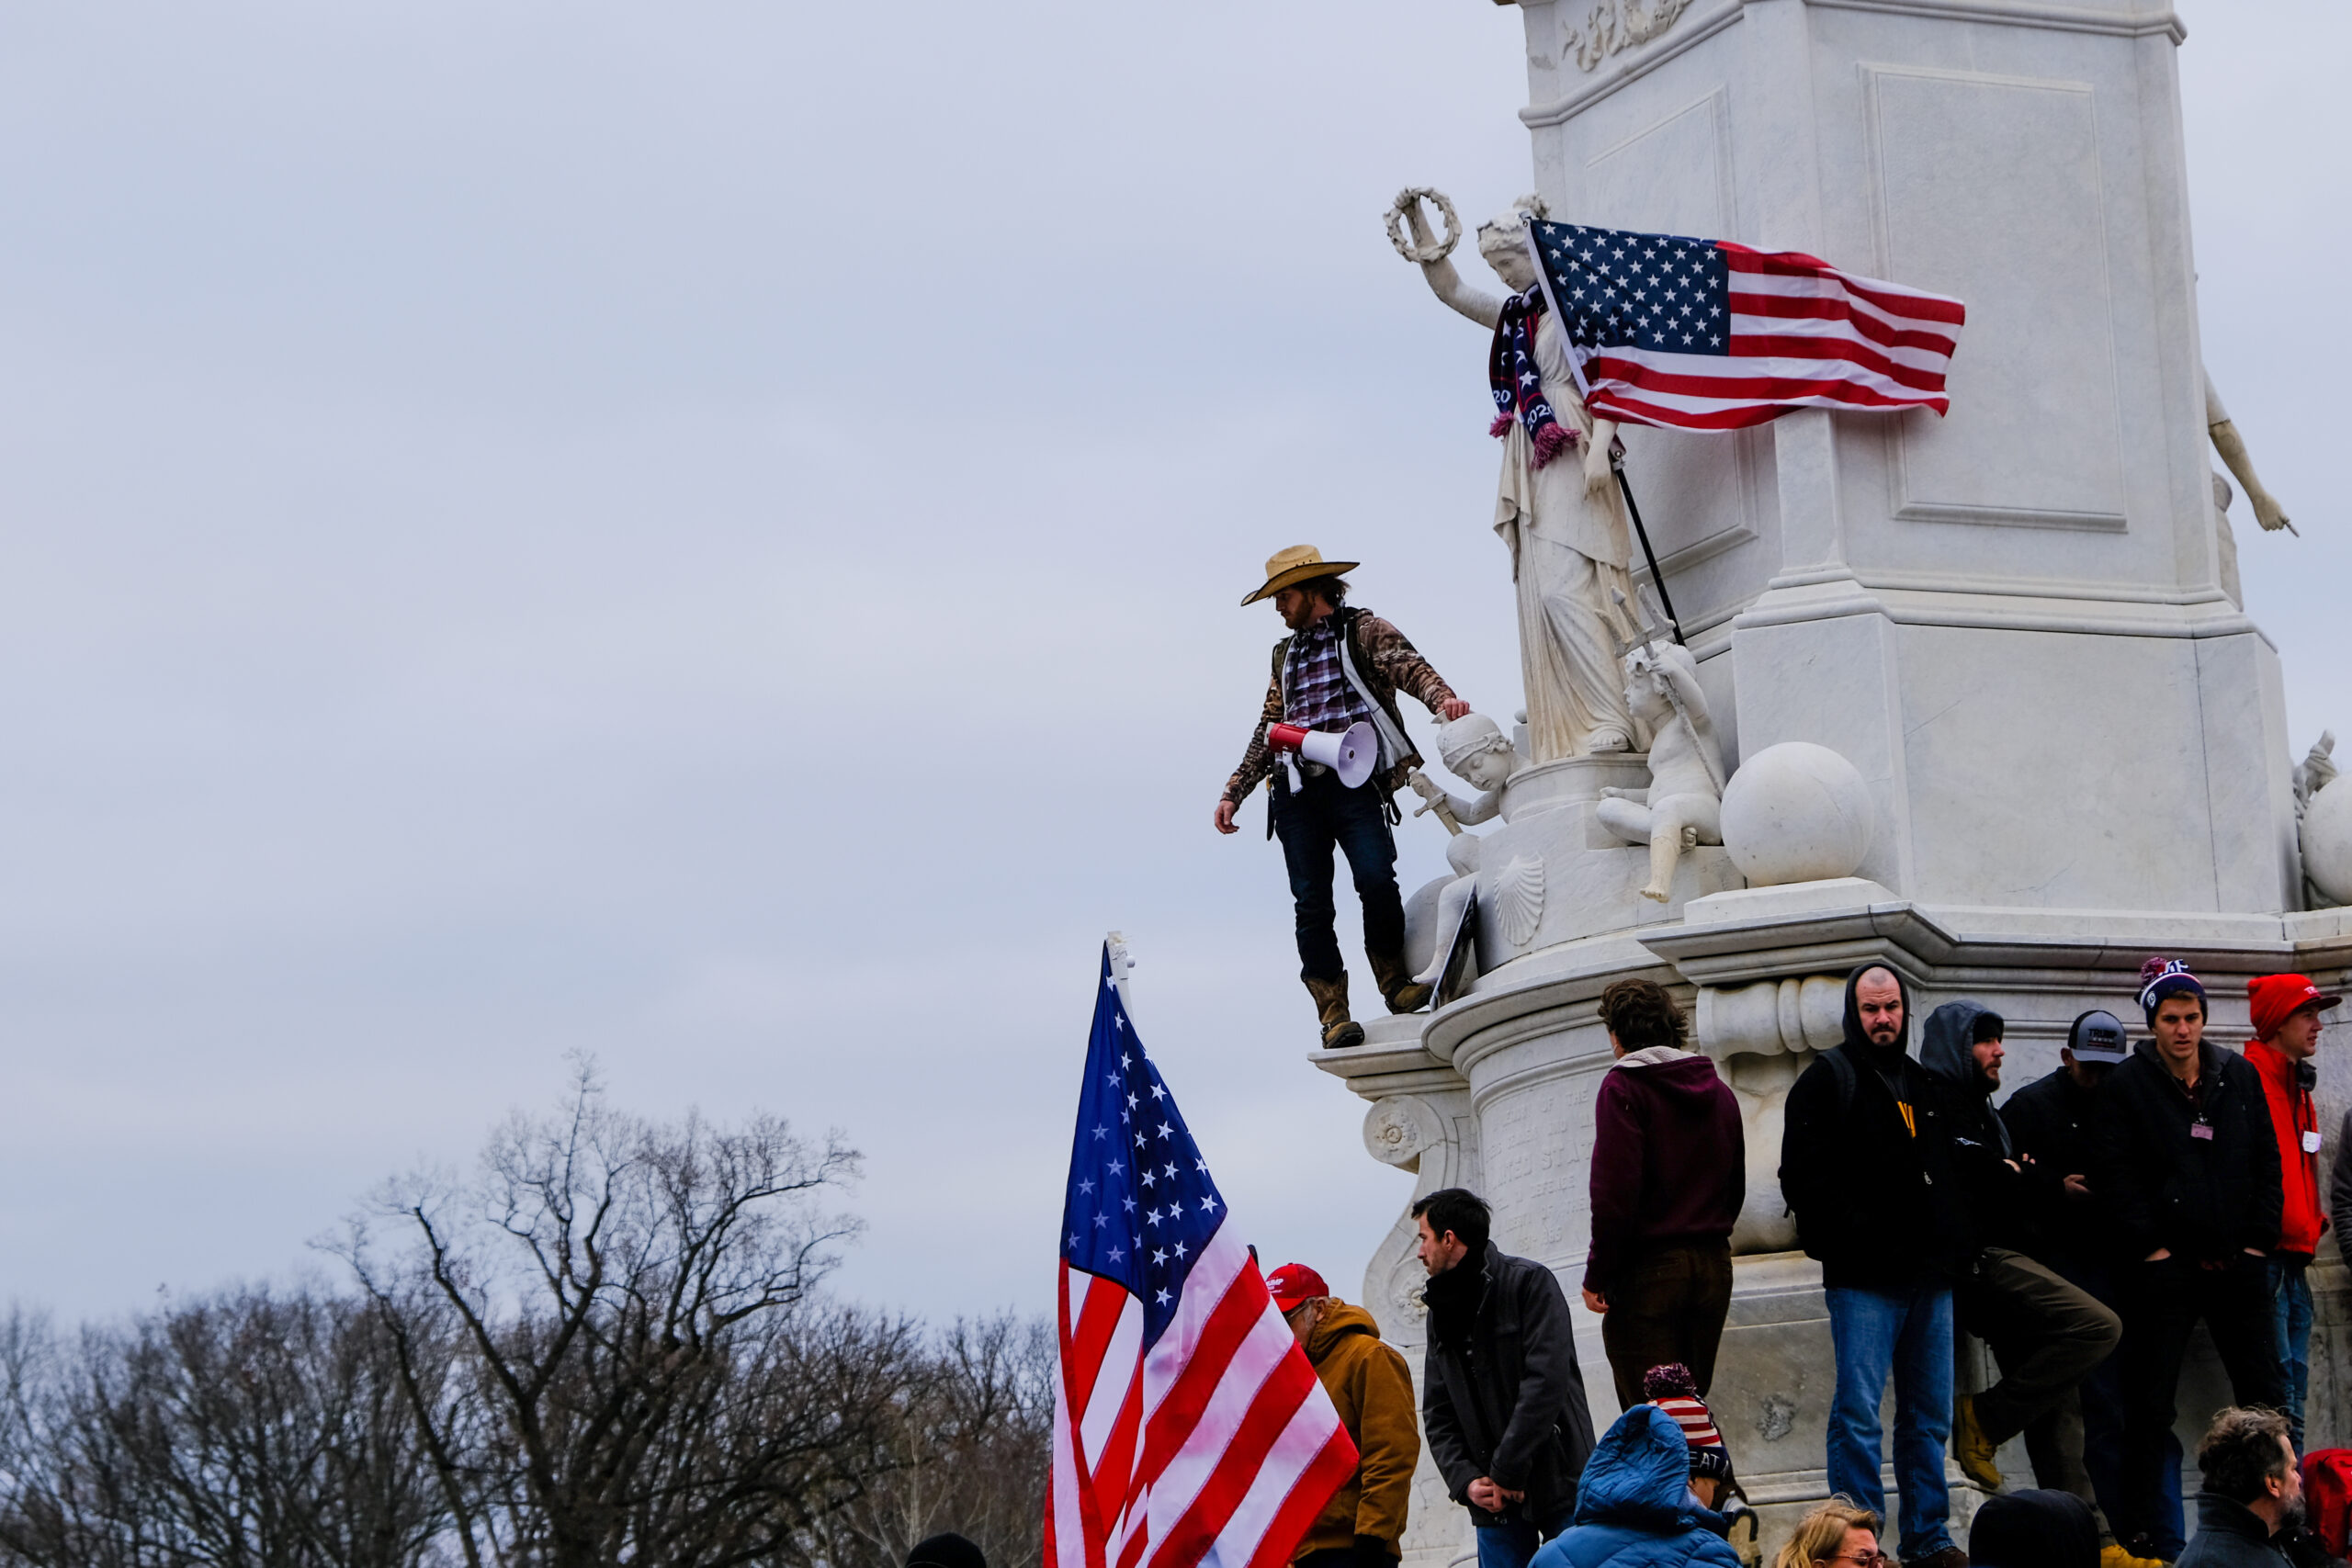 Pro-Trump supporters at the Peace Monument outside the U.S. Capitol on Jan. 6, 2021.